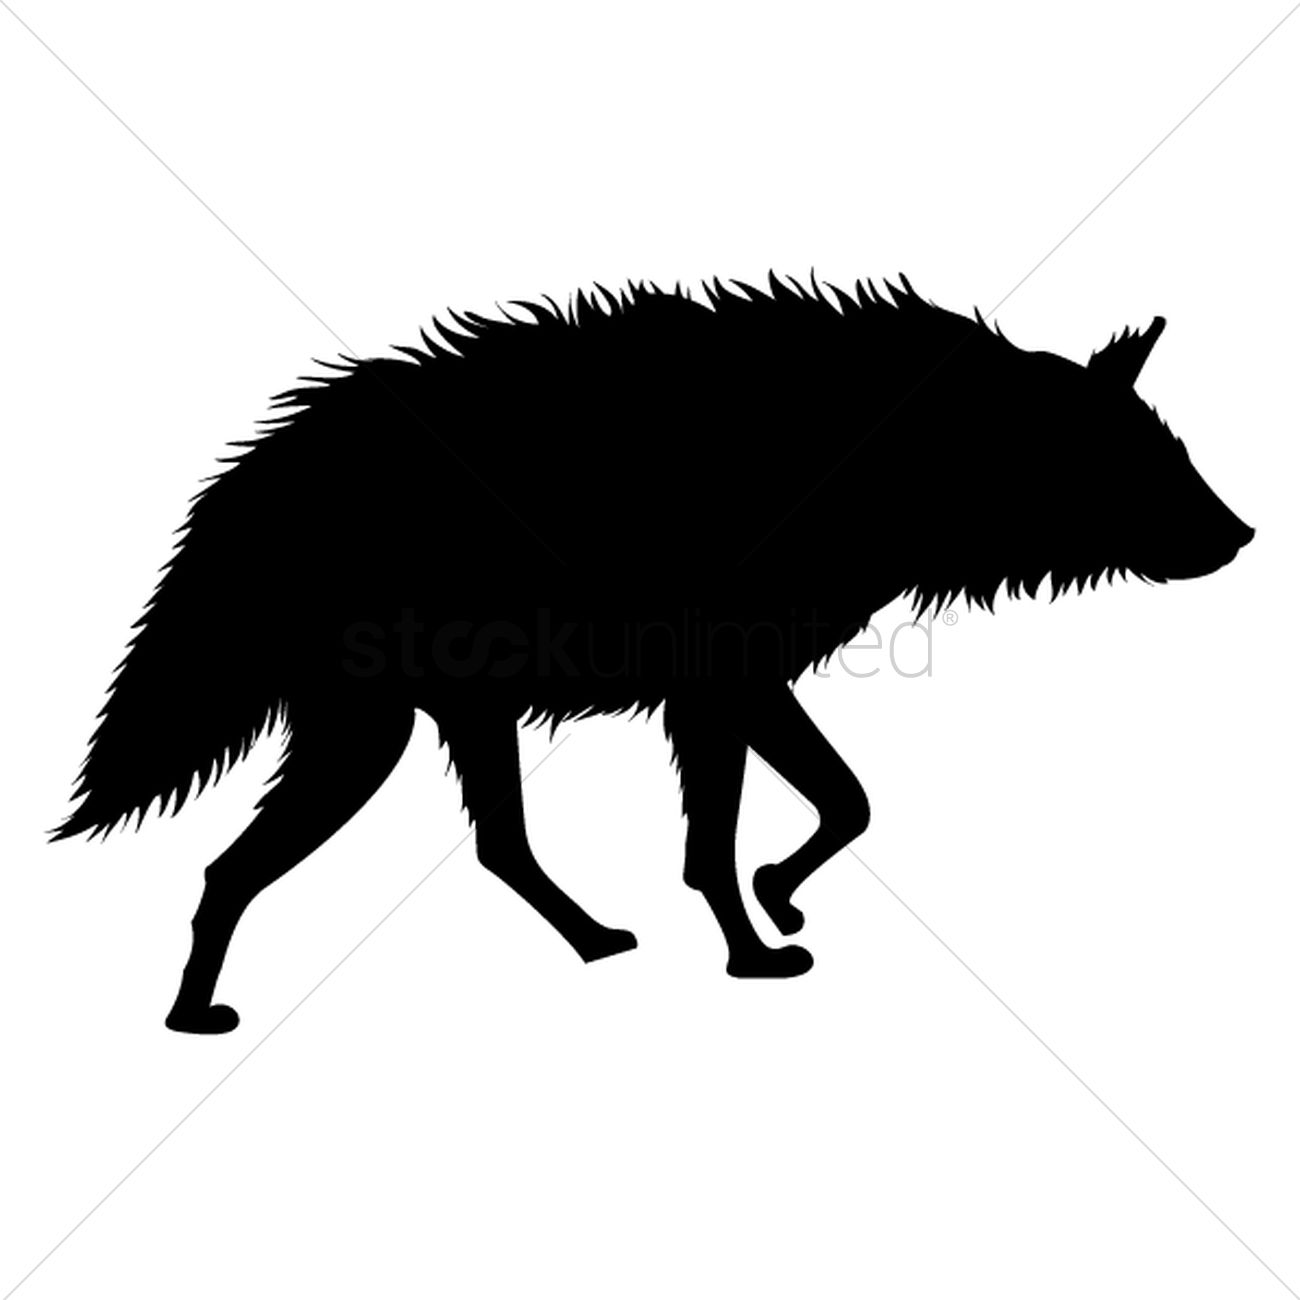 Silhouette of hyena Vector Image.